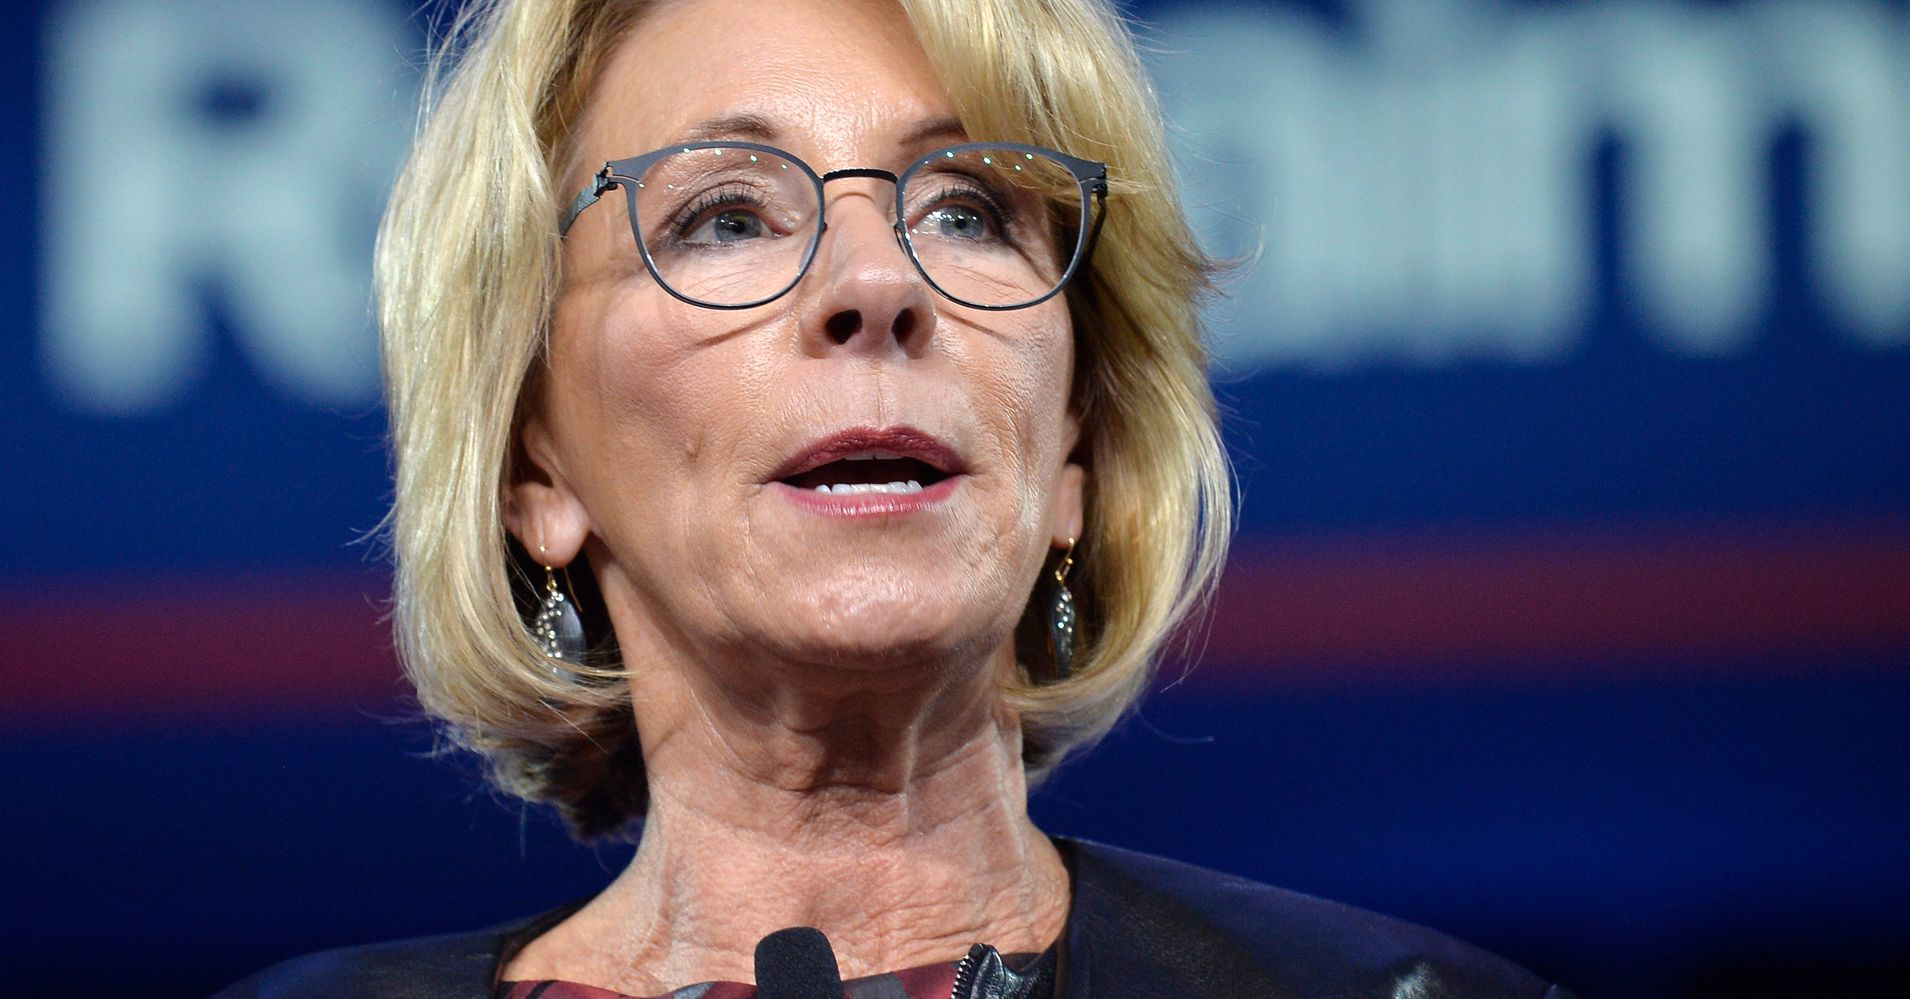 An Open Letter To Betsy Devos From >> Another Open Letter To Betsy Devos From A Public School Teacher